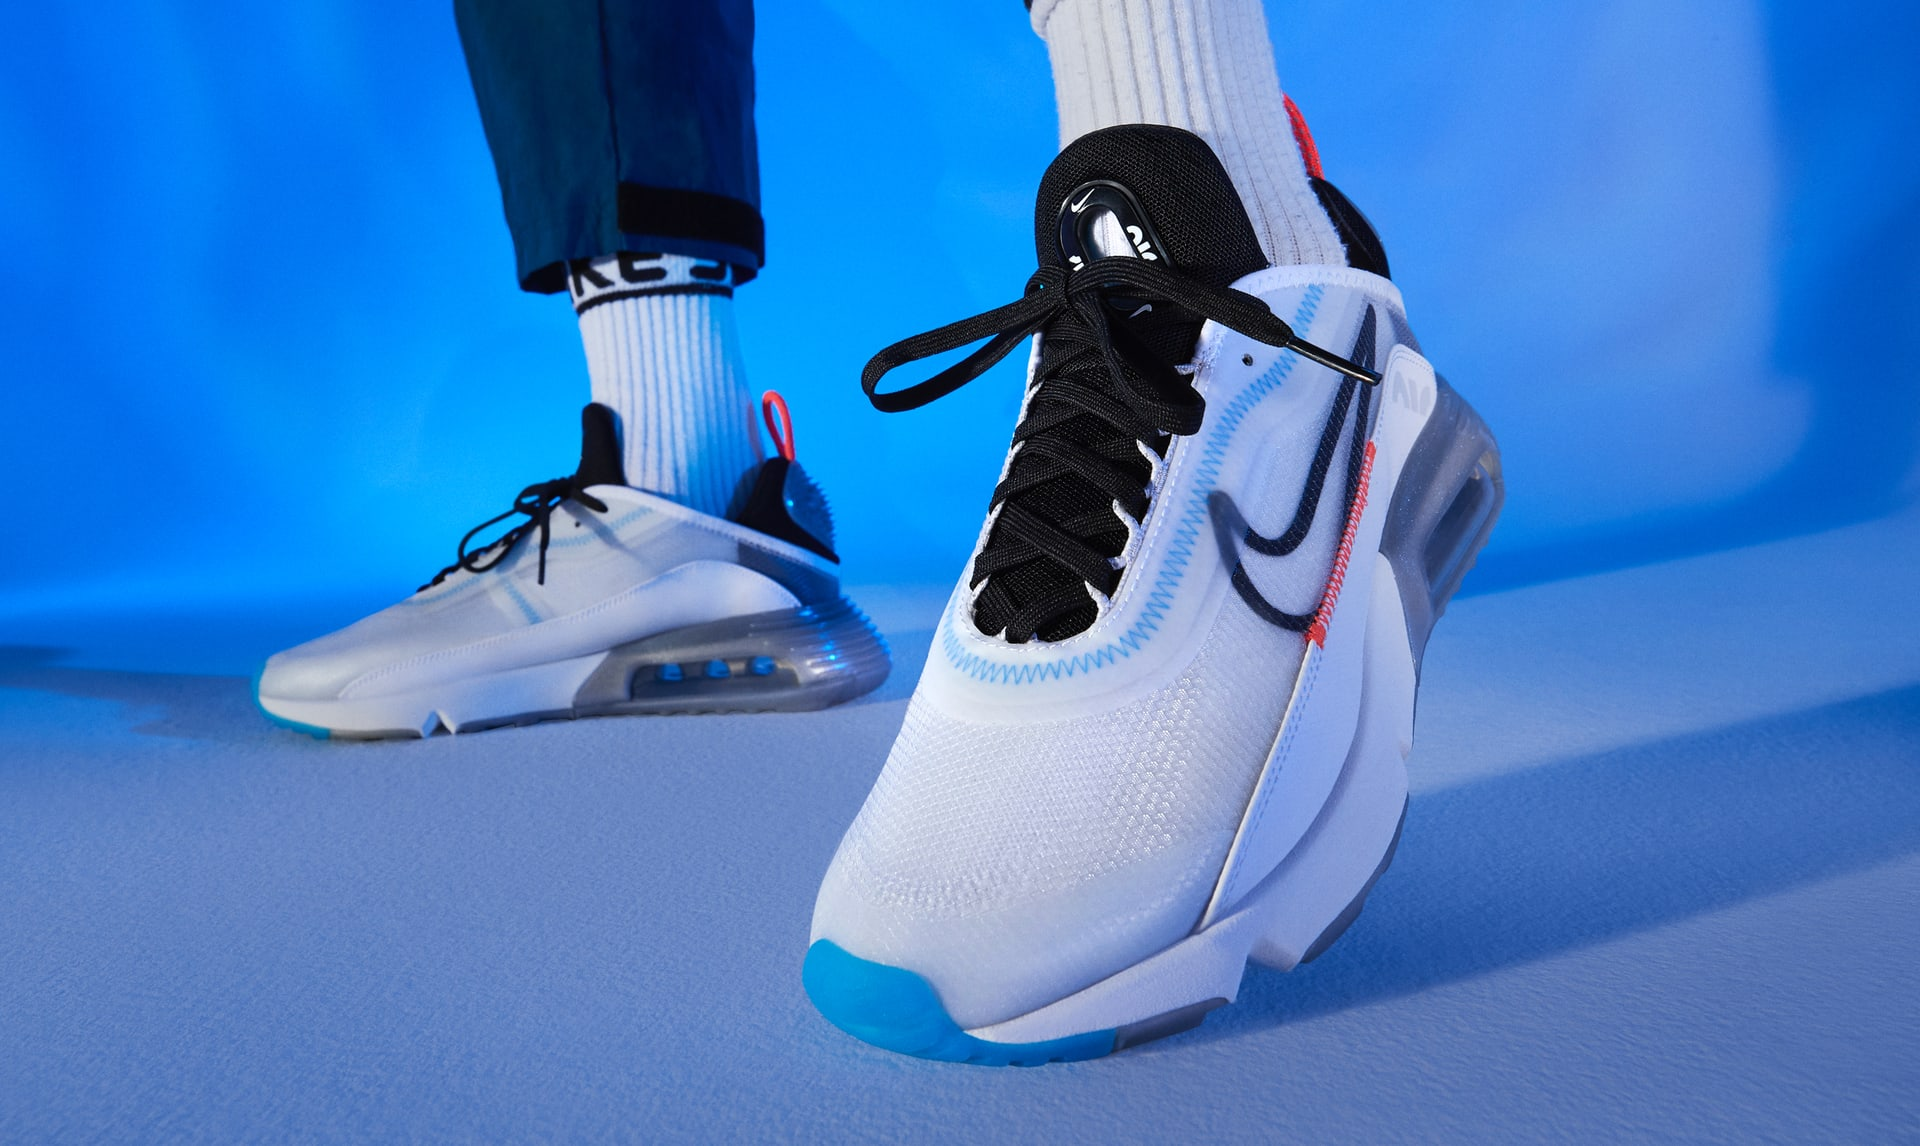 Excremento Esquivar Sureste  Rosalía Presents The New Nike Air Max 2090 Sneakers Vanity Teen Menswear &  New Faces Magazine